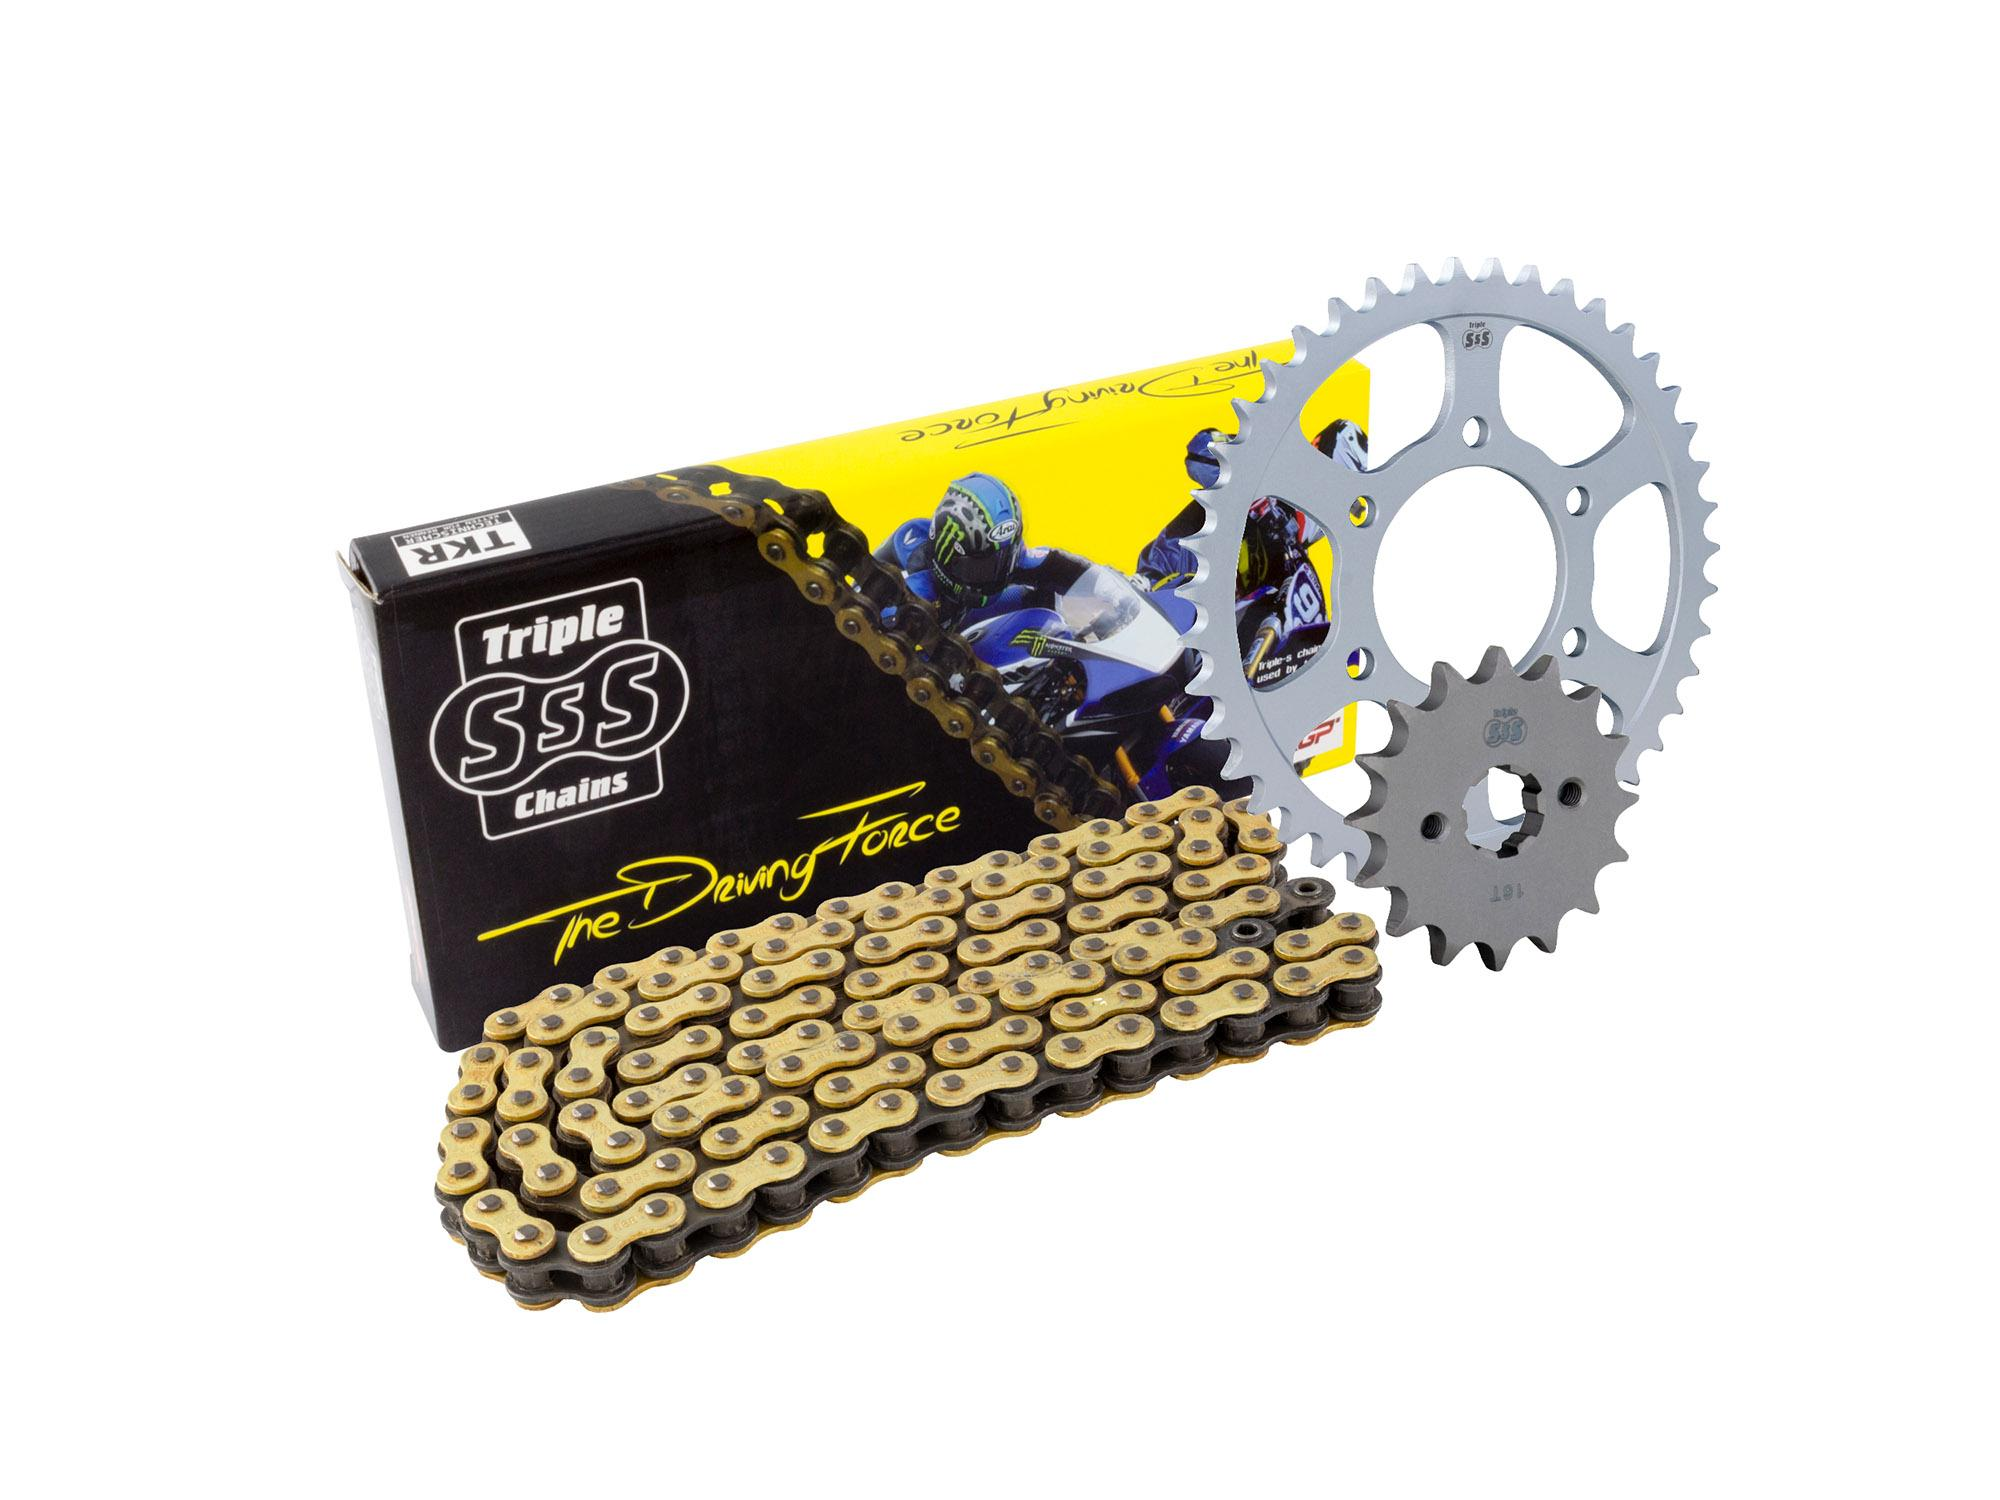 Suzuki DL1000 V-Strom all models 02-10 Chain & Sprocket Kit: 17T Front, 42T Rear, HD O-Ring Gold Chain 525H 112 Link